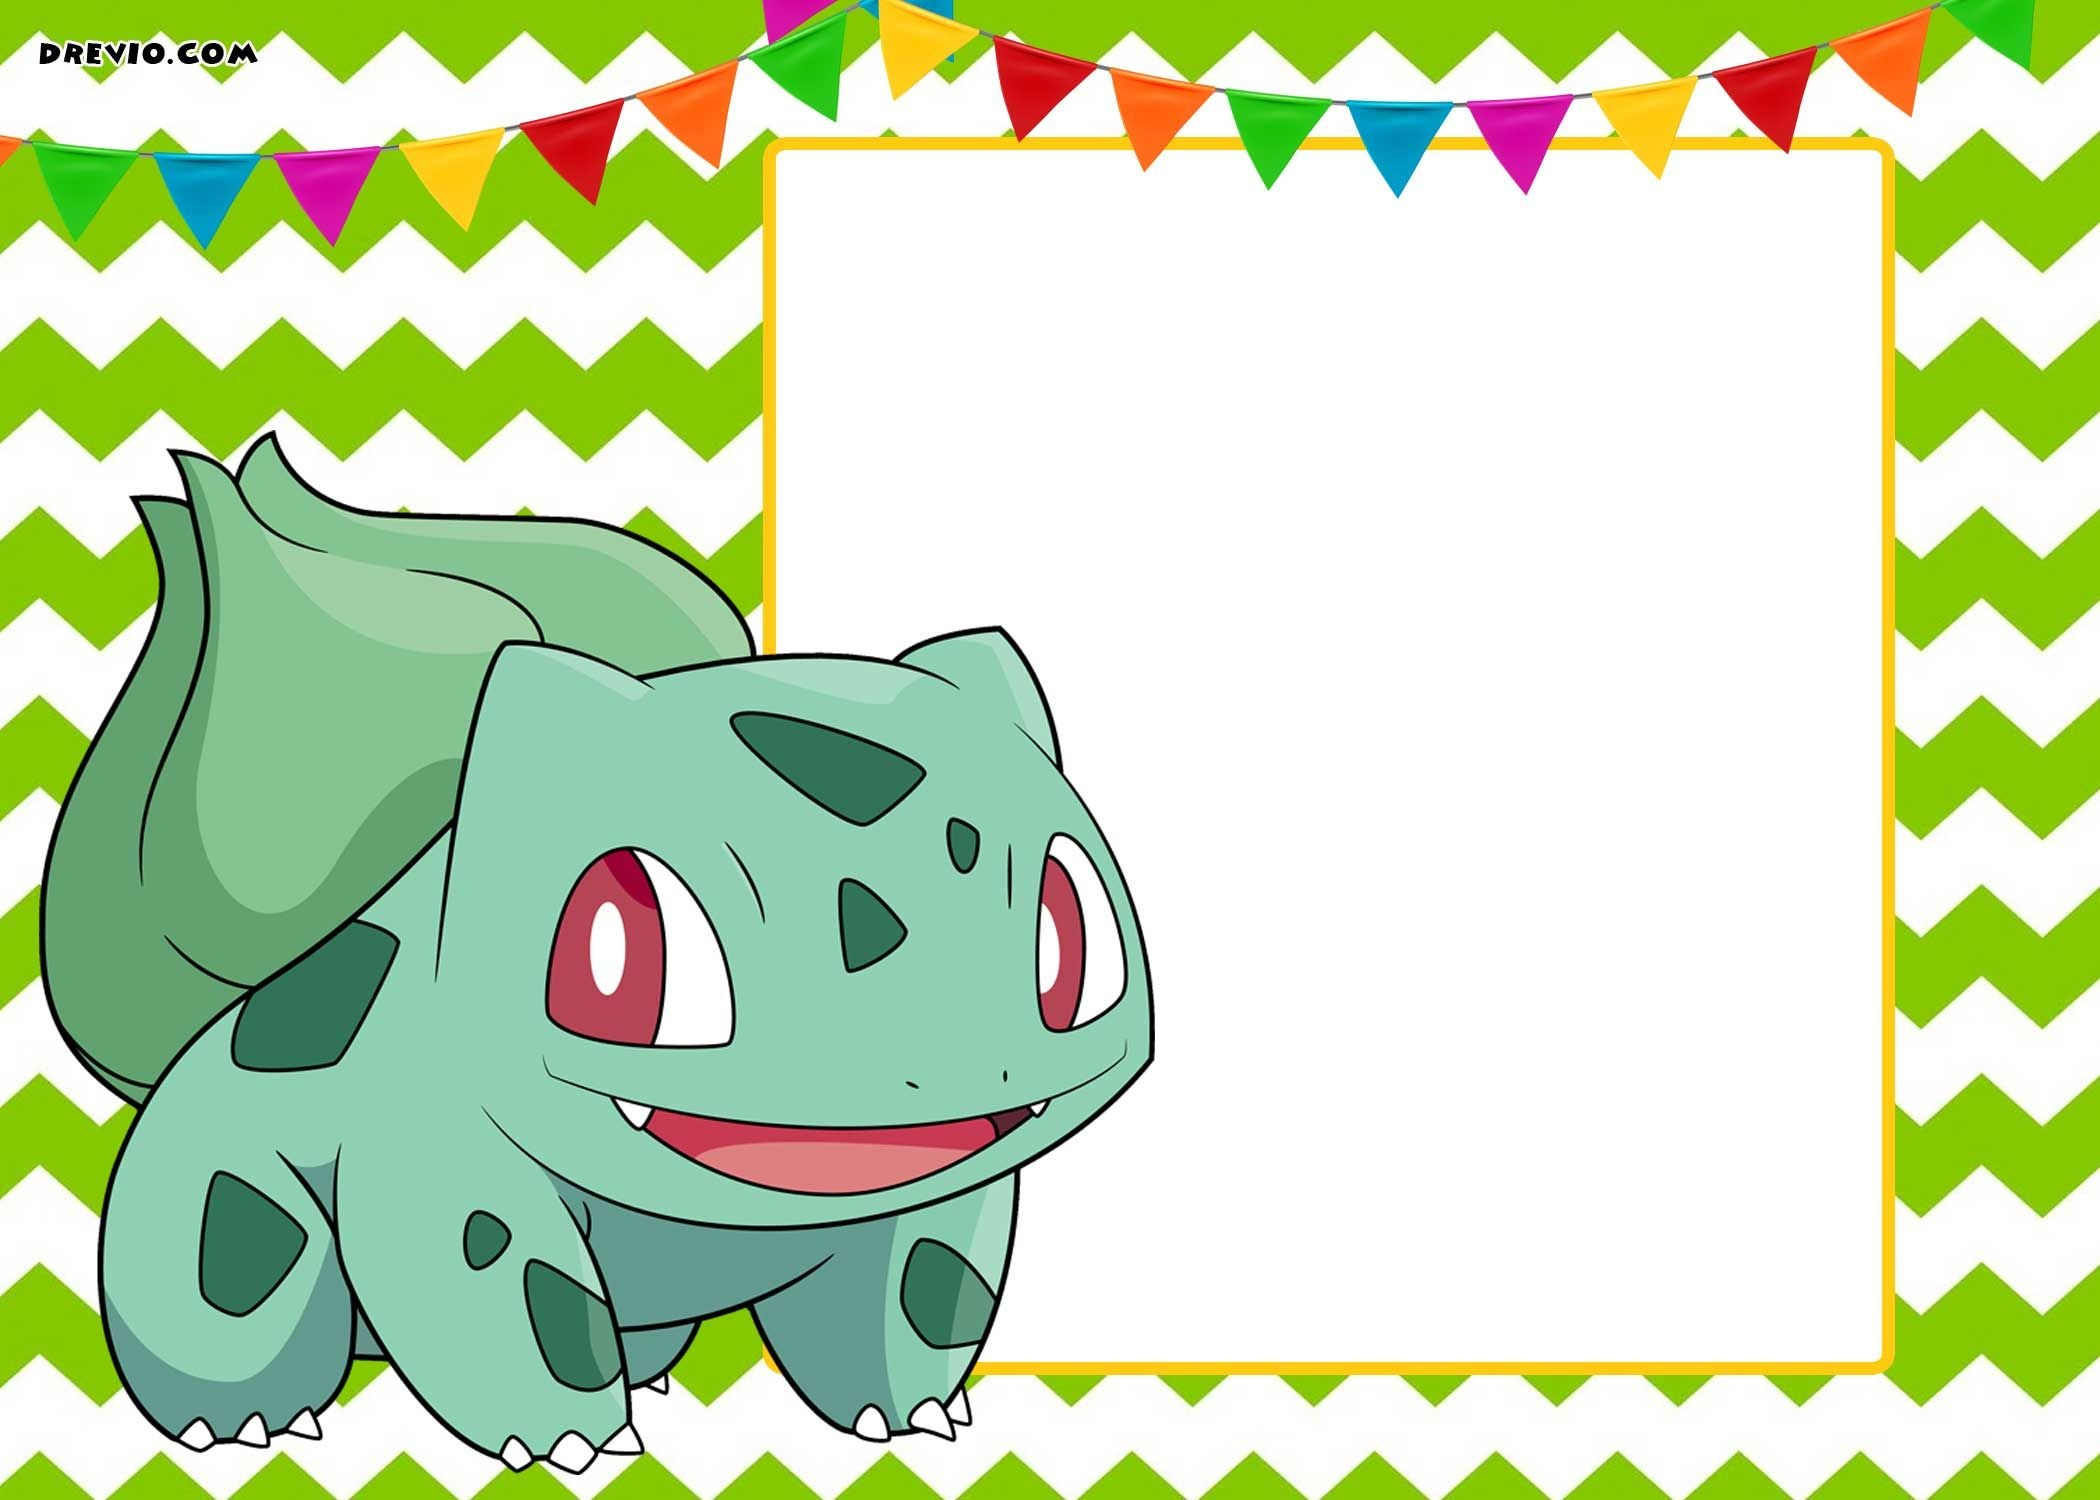 Free Printable Pokemon Invitation Templates | Free Printable - Free Printable Pokemon Birthday Invitations